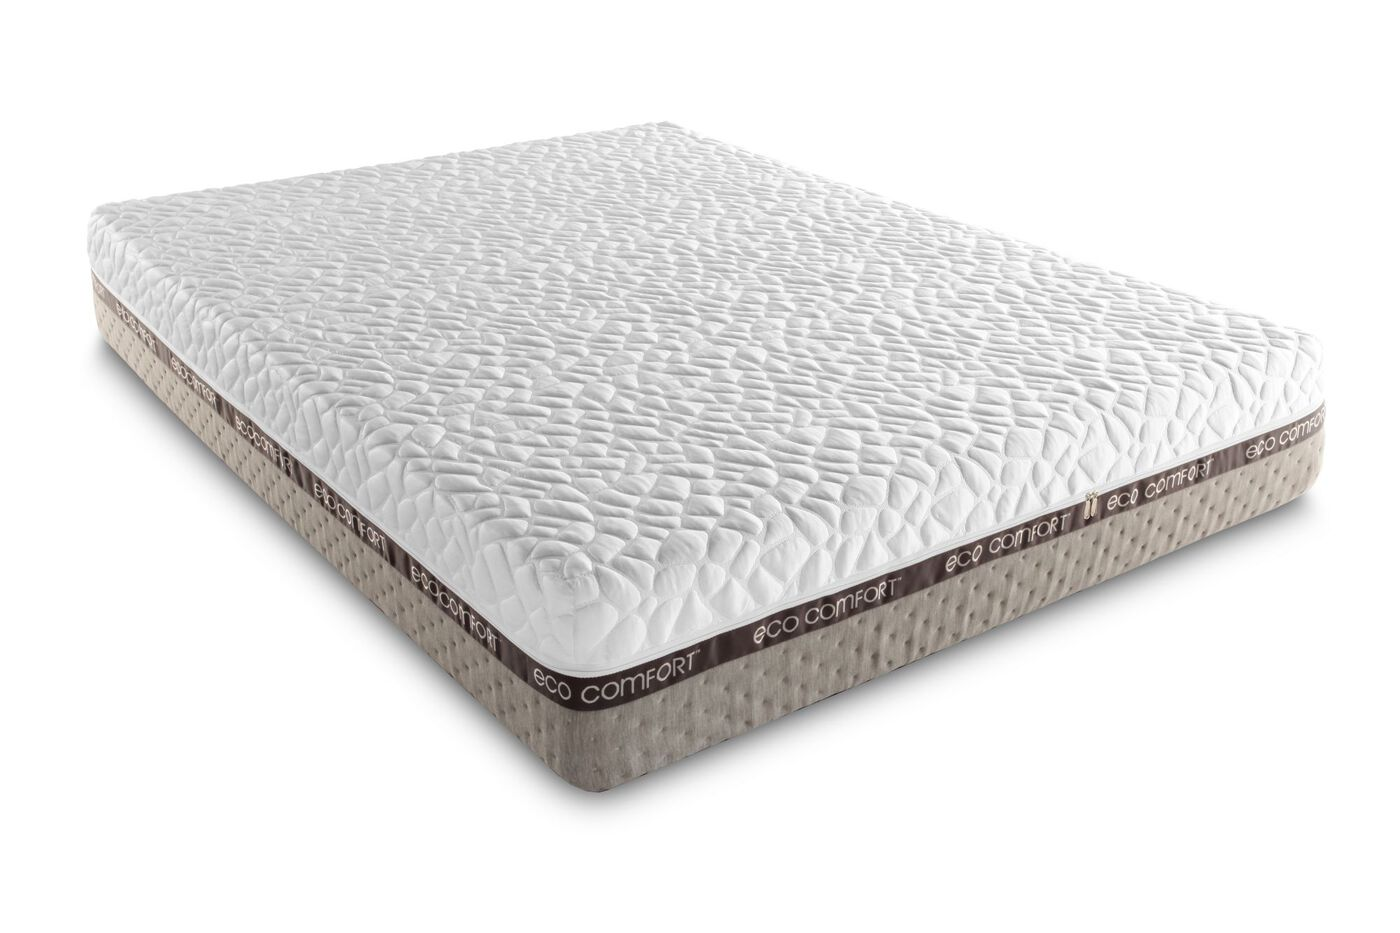 Firm Ecocomfort Mattress Mathis Brothers